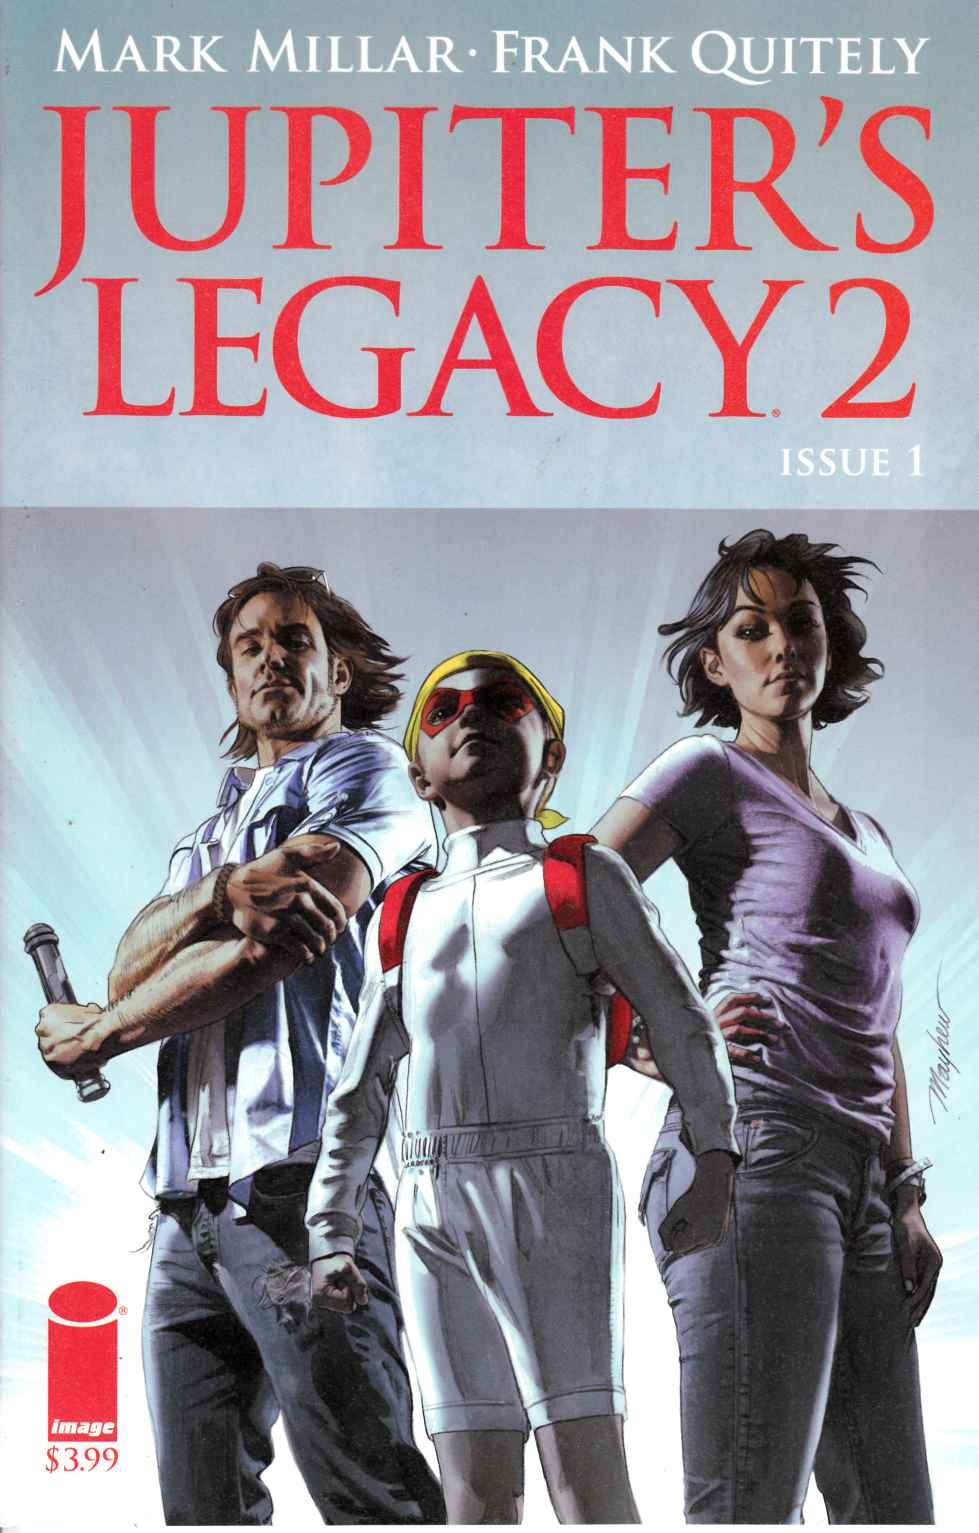 Jupiters Legacy Vol 2 #1 Cover C [Image Comic]_LARGE